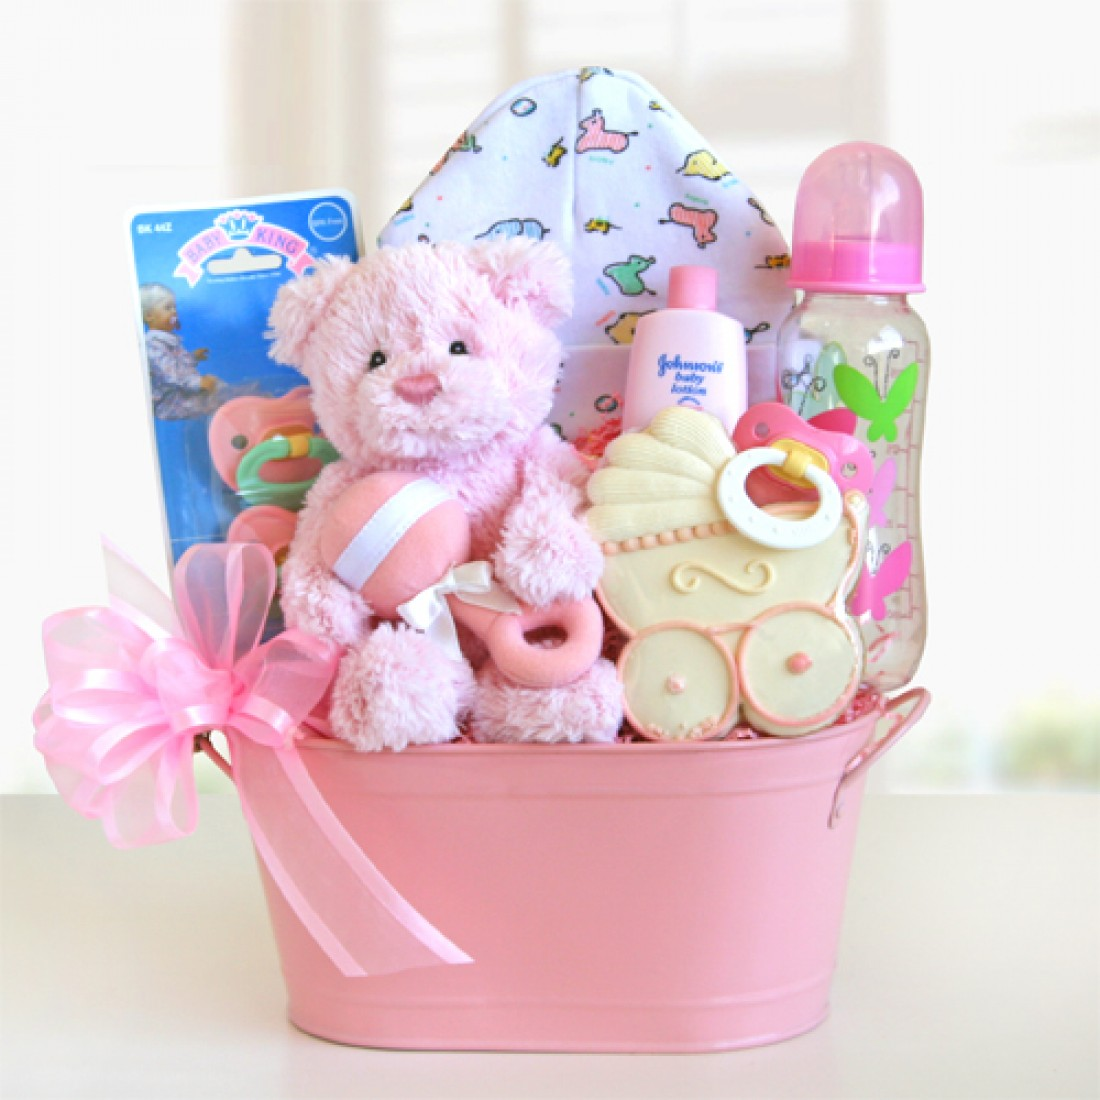 New Home Gifts Gift Baskets Gifts Com: Cute Package New Baby Gift Baskets